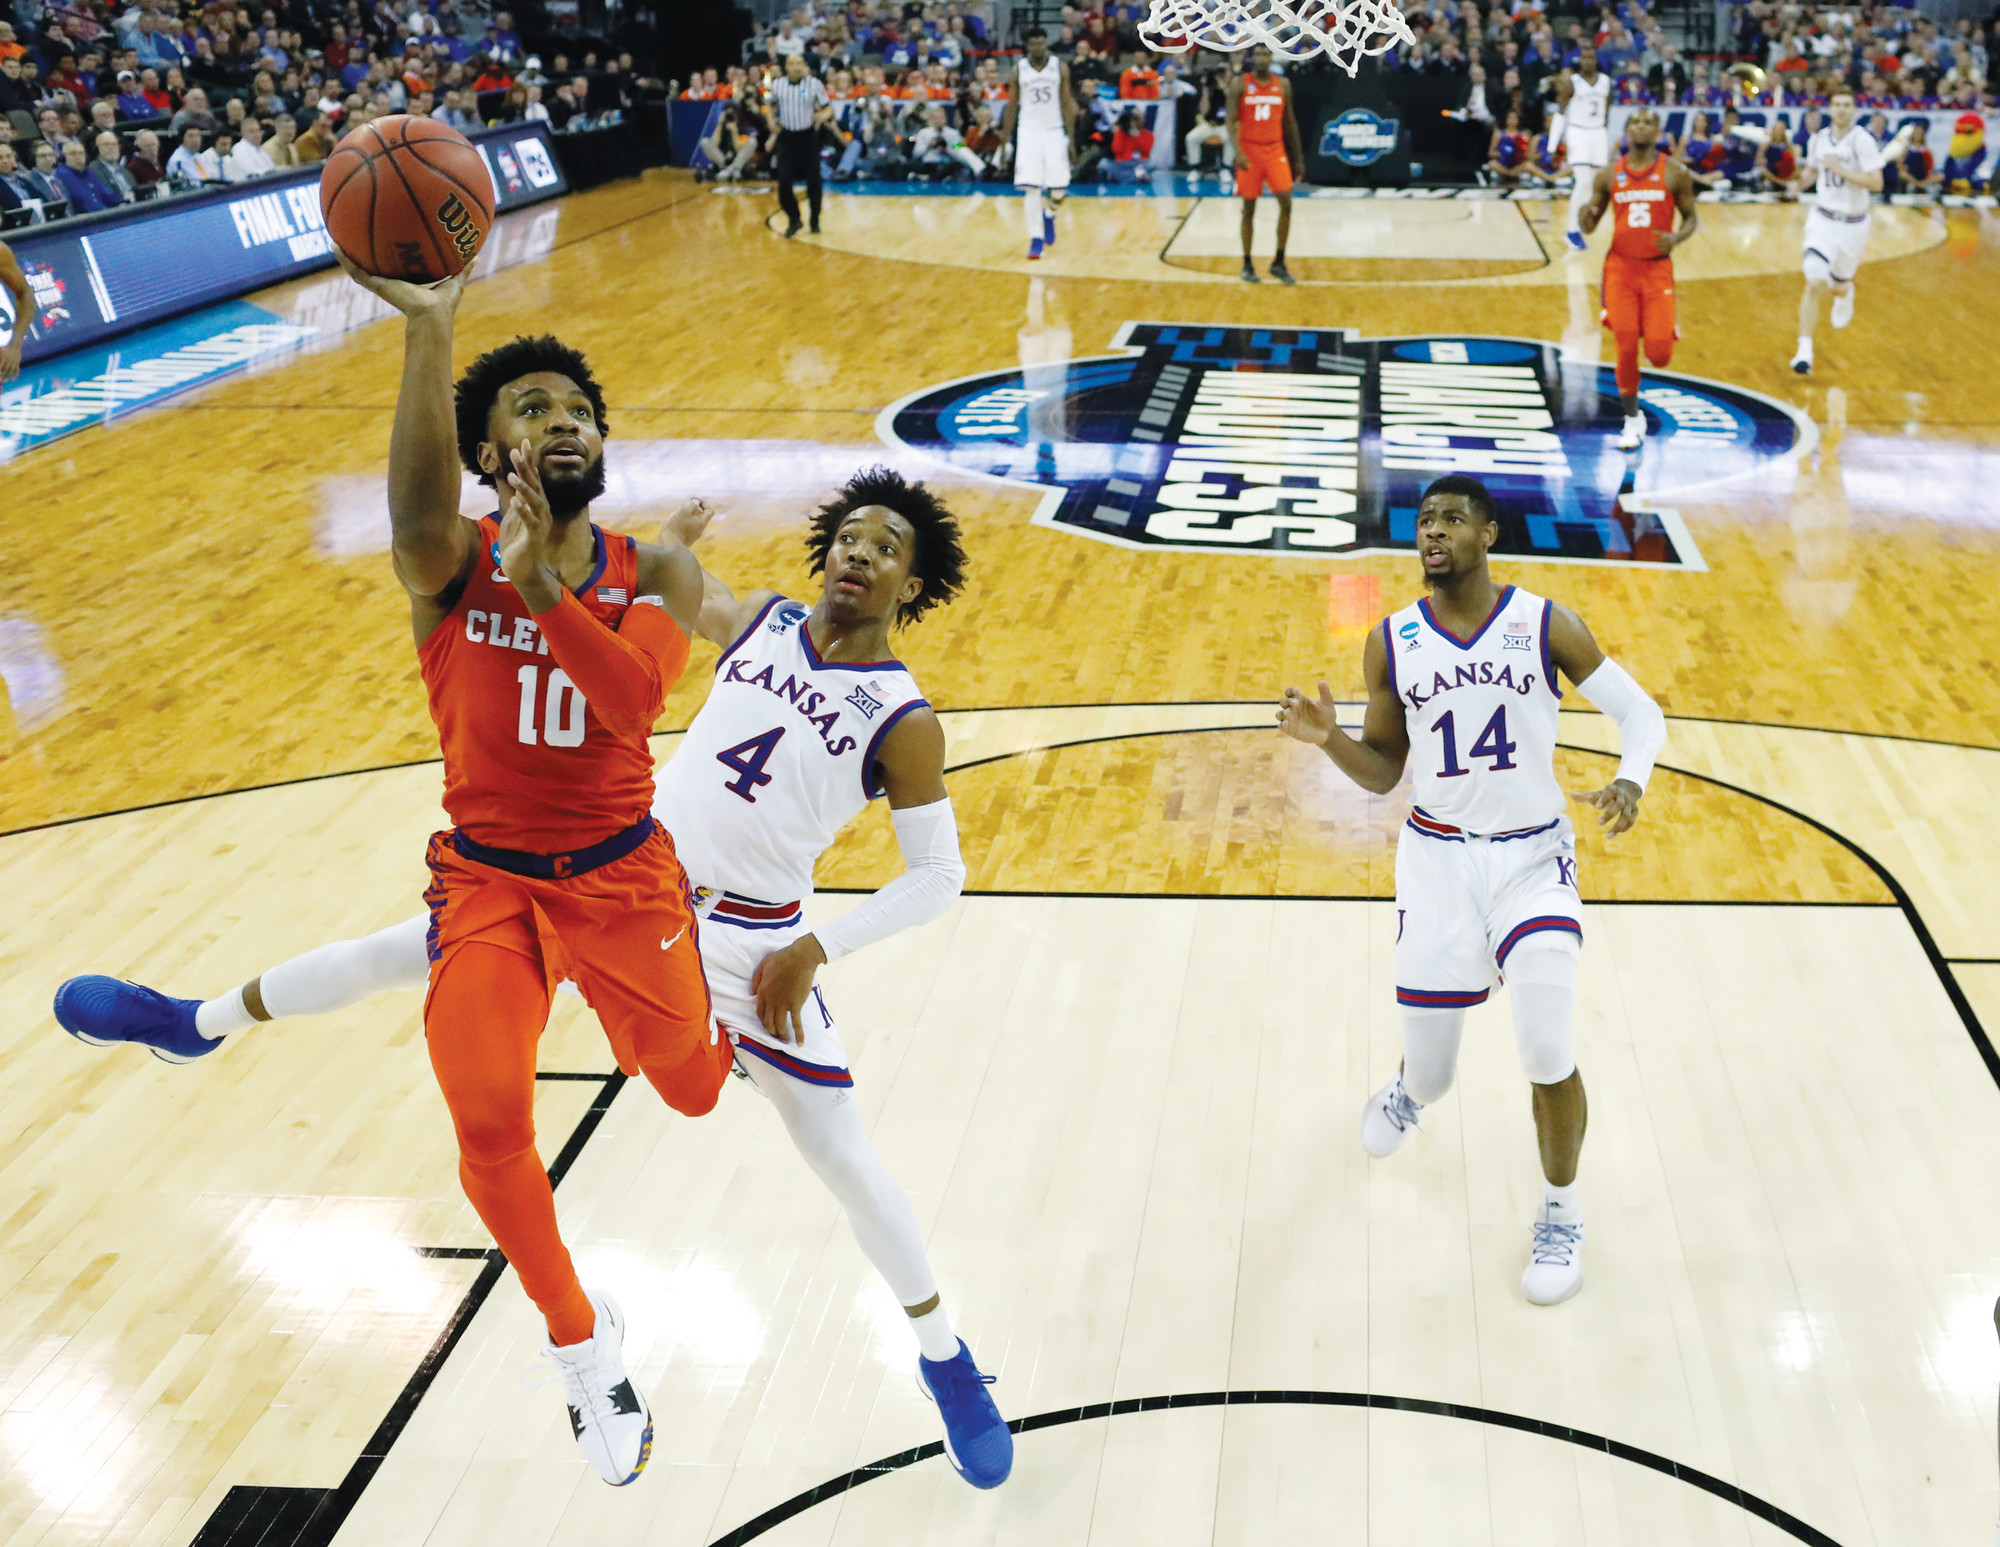 Clemson's Gabe DeVoe (10) heads to the basket as Kansas' Devonte' Graham (4) and Malik Newman defend during the second half of the Tigers' 80-76 loss to the Jayhawks in their regional semifinal game in the NCAA  tournament on Friday in Omaha, Nebraska.